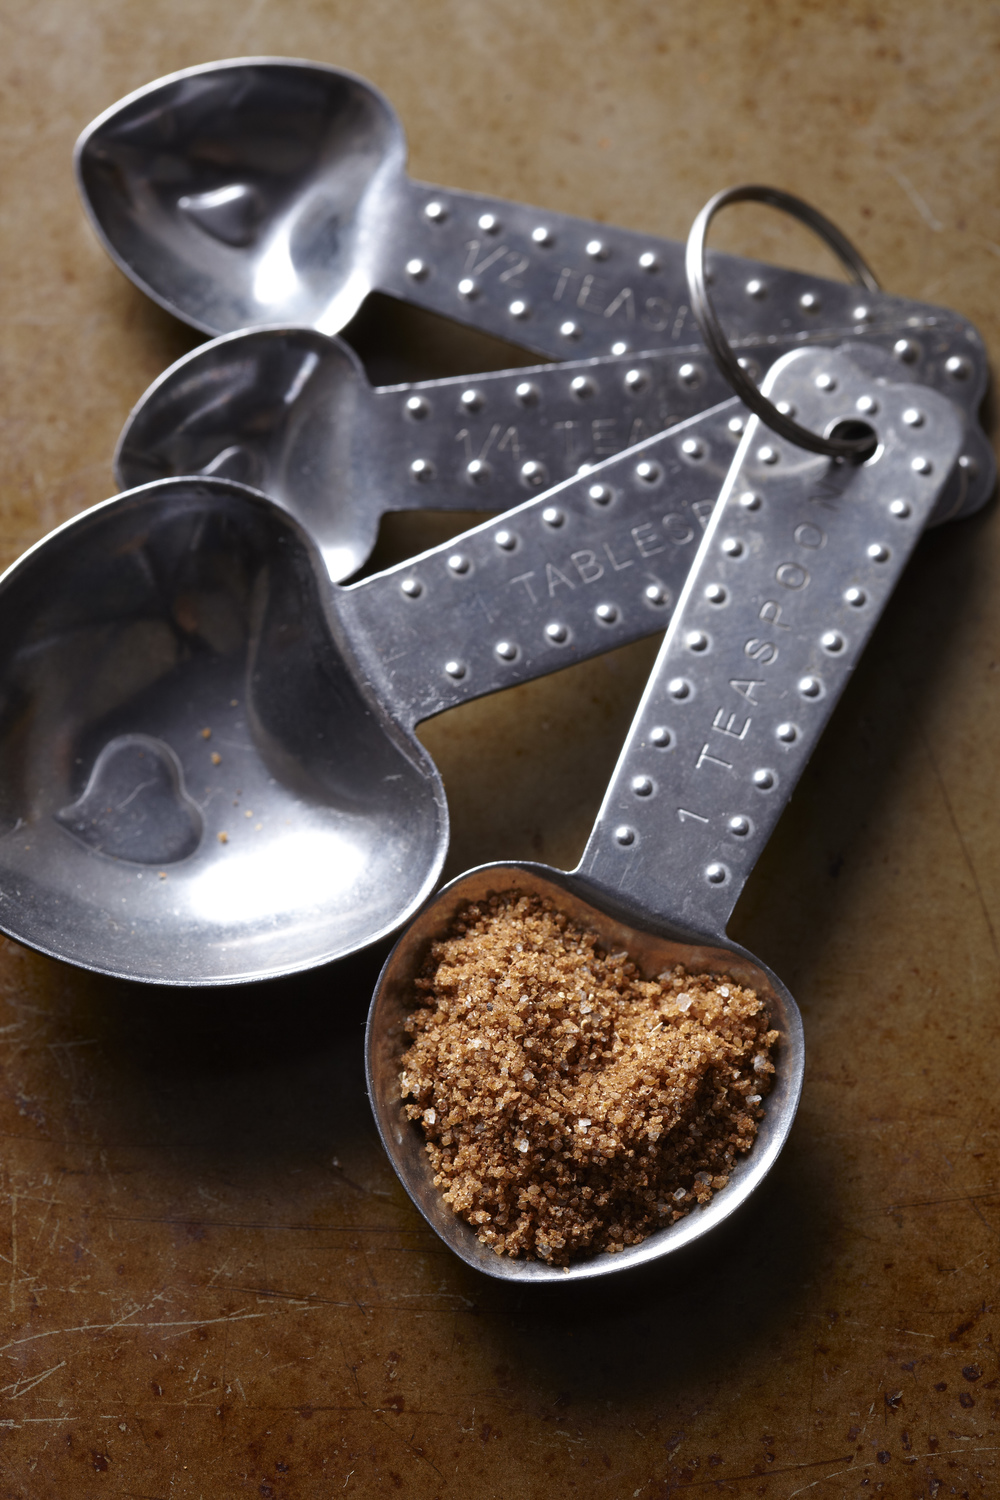 Spices_LegendaryLove_Spoon_013.jpg